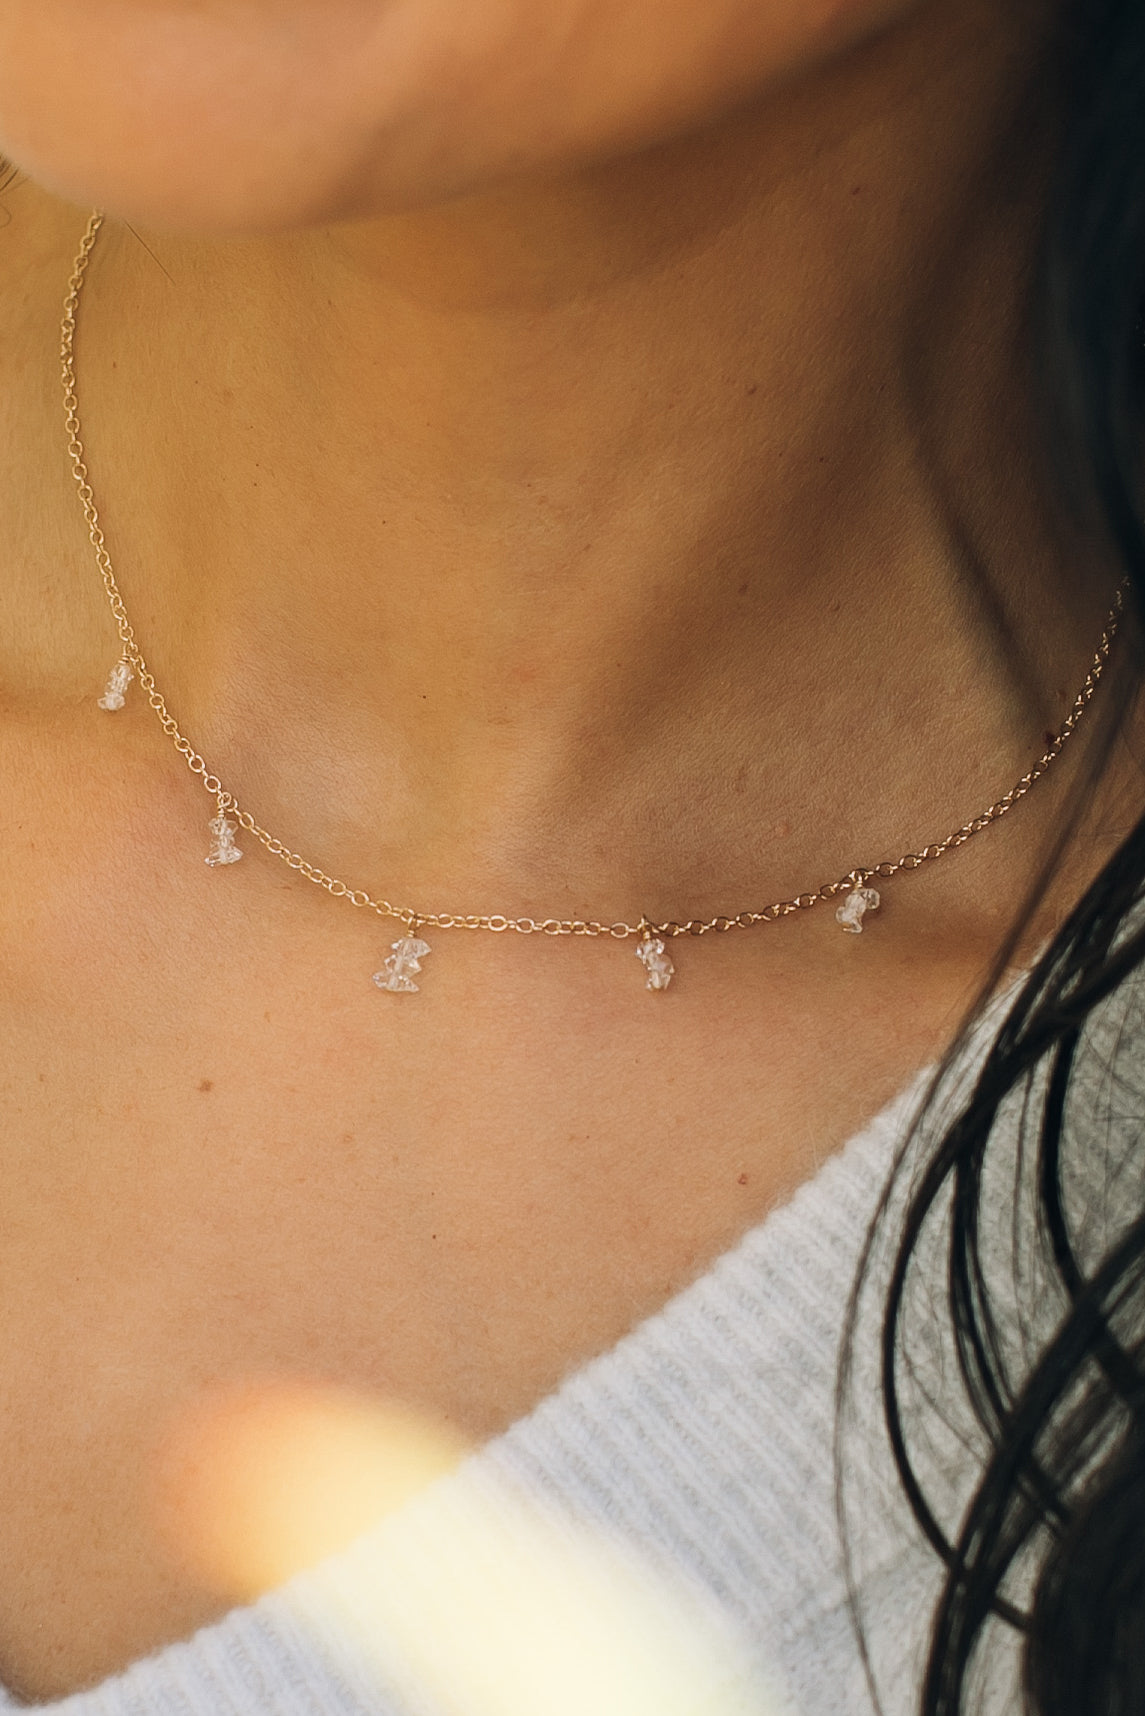 Caprice Necklace